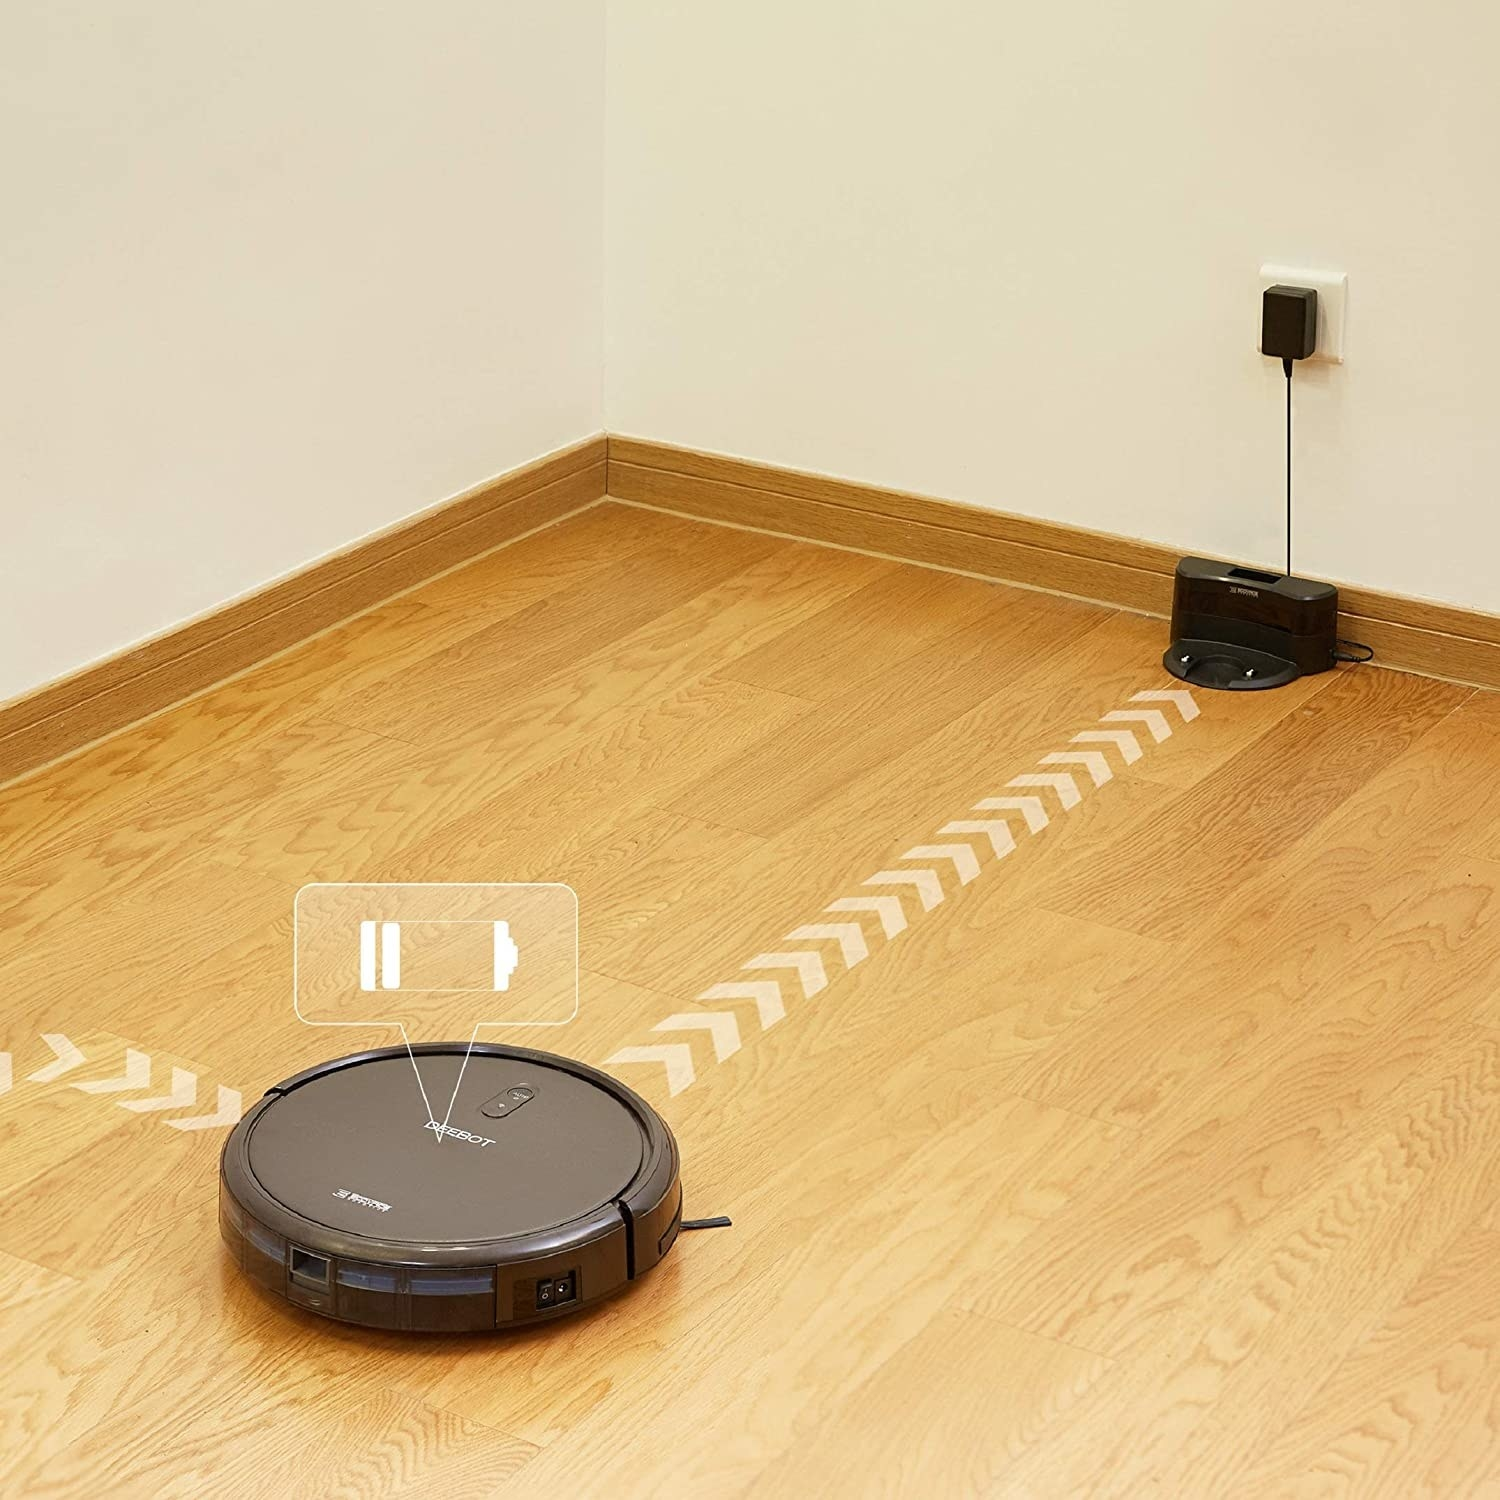 The robot vacuum returning to its base, which is plugged into an outlet